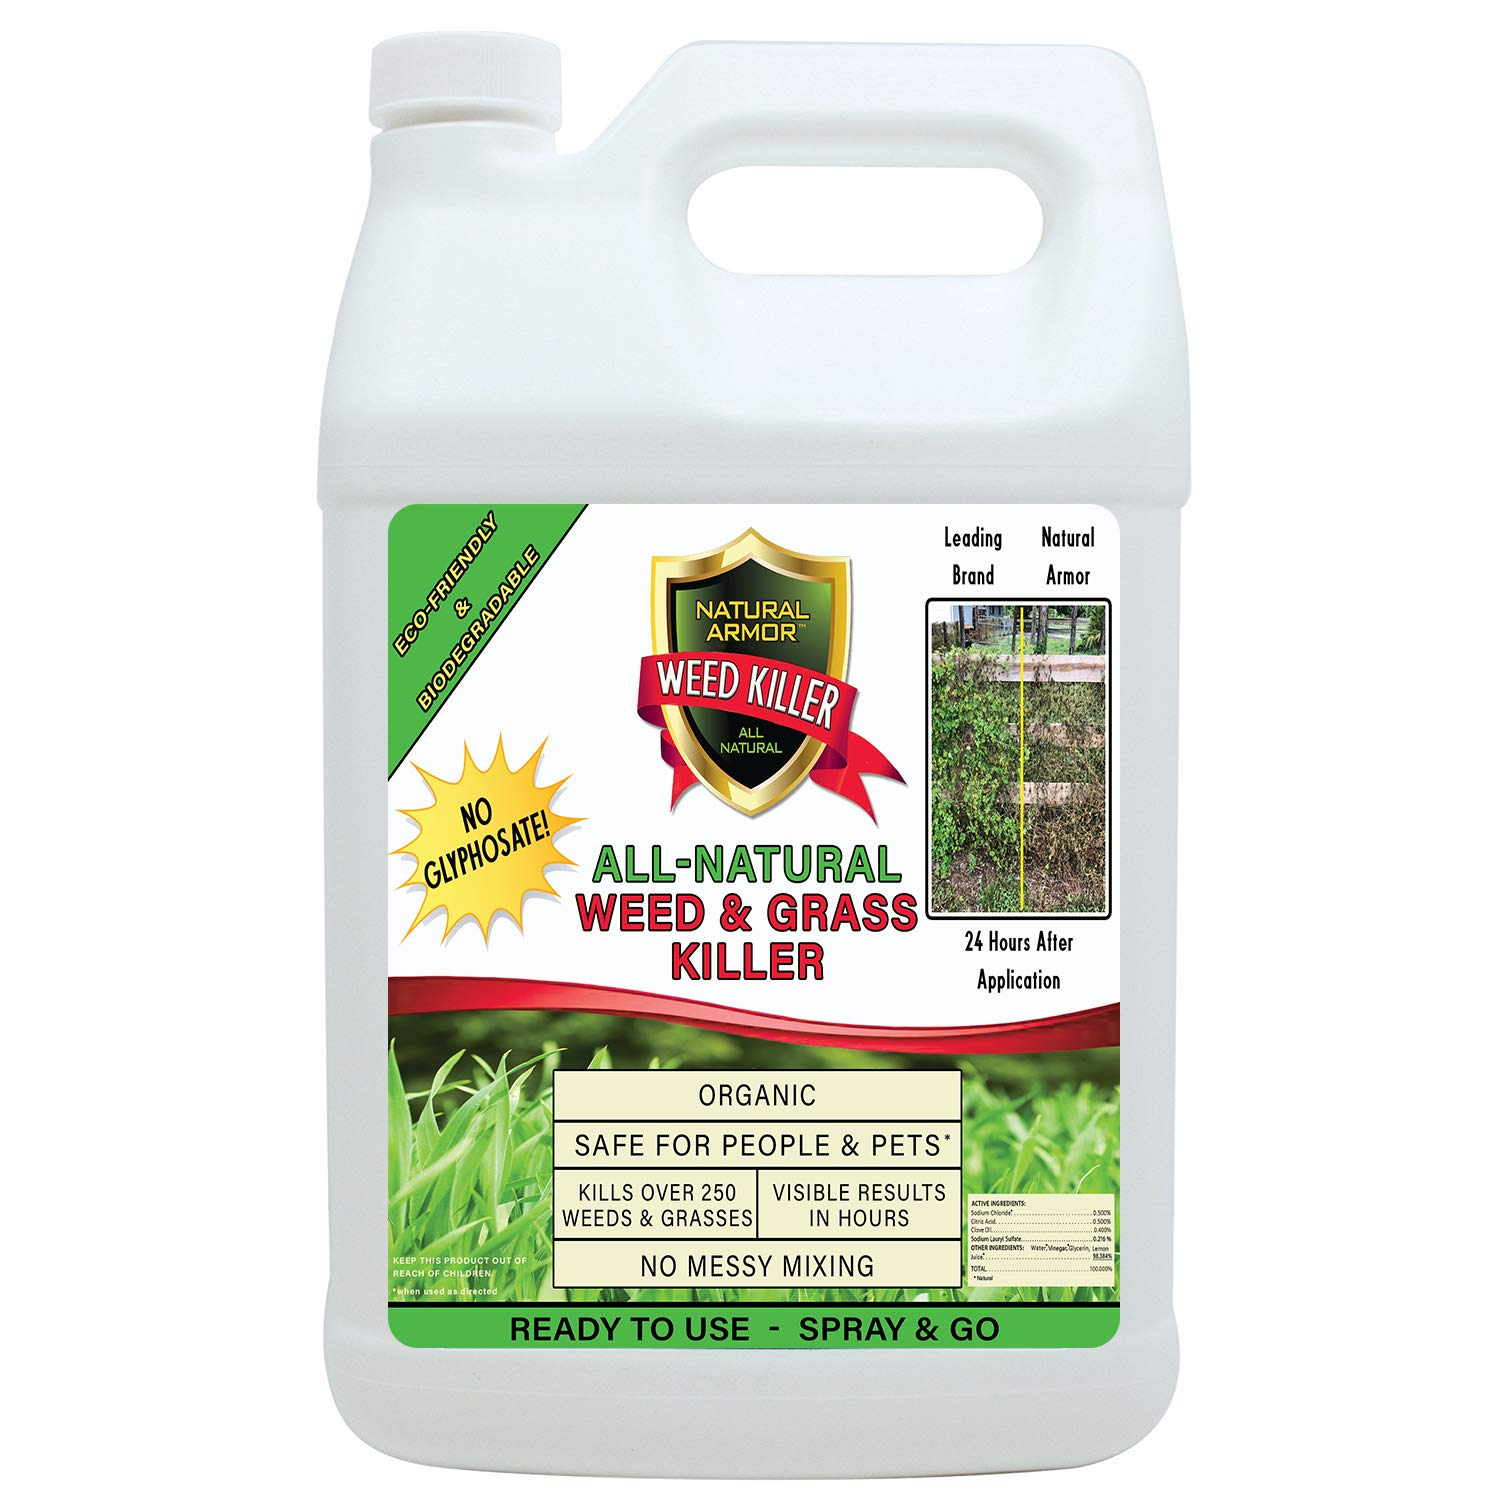 Natural Armor Weed and Grass Killer All-Natural Concentrated Formula. Contains No Glyphosate (2.5 Gallons) Pet Safe